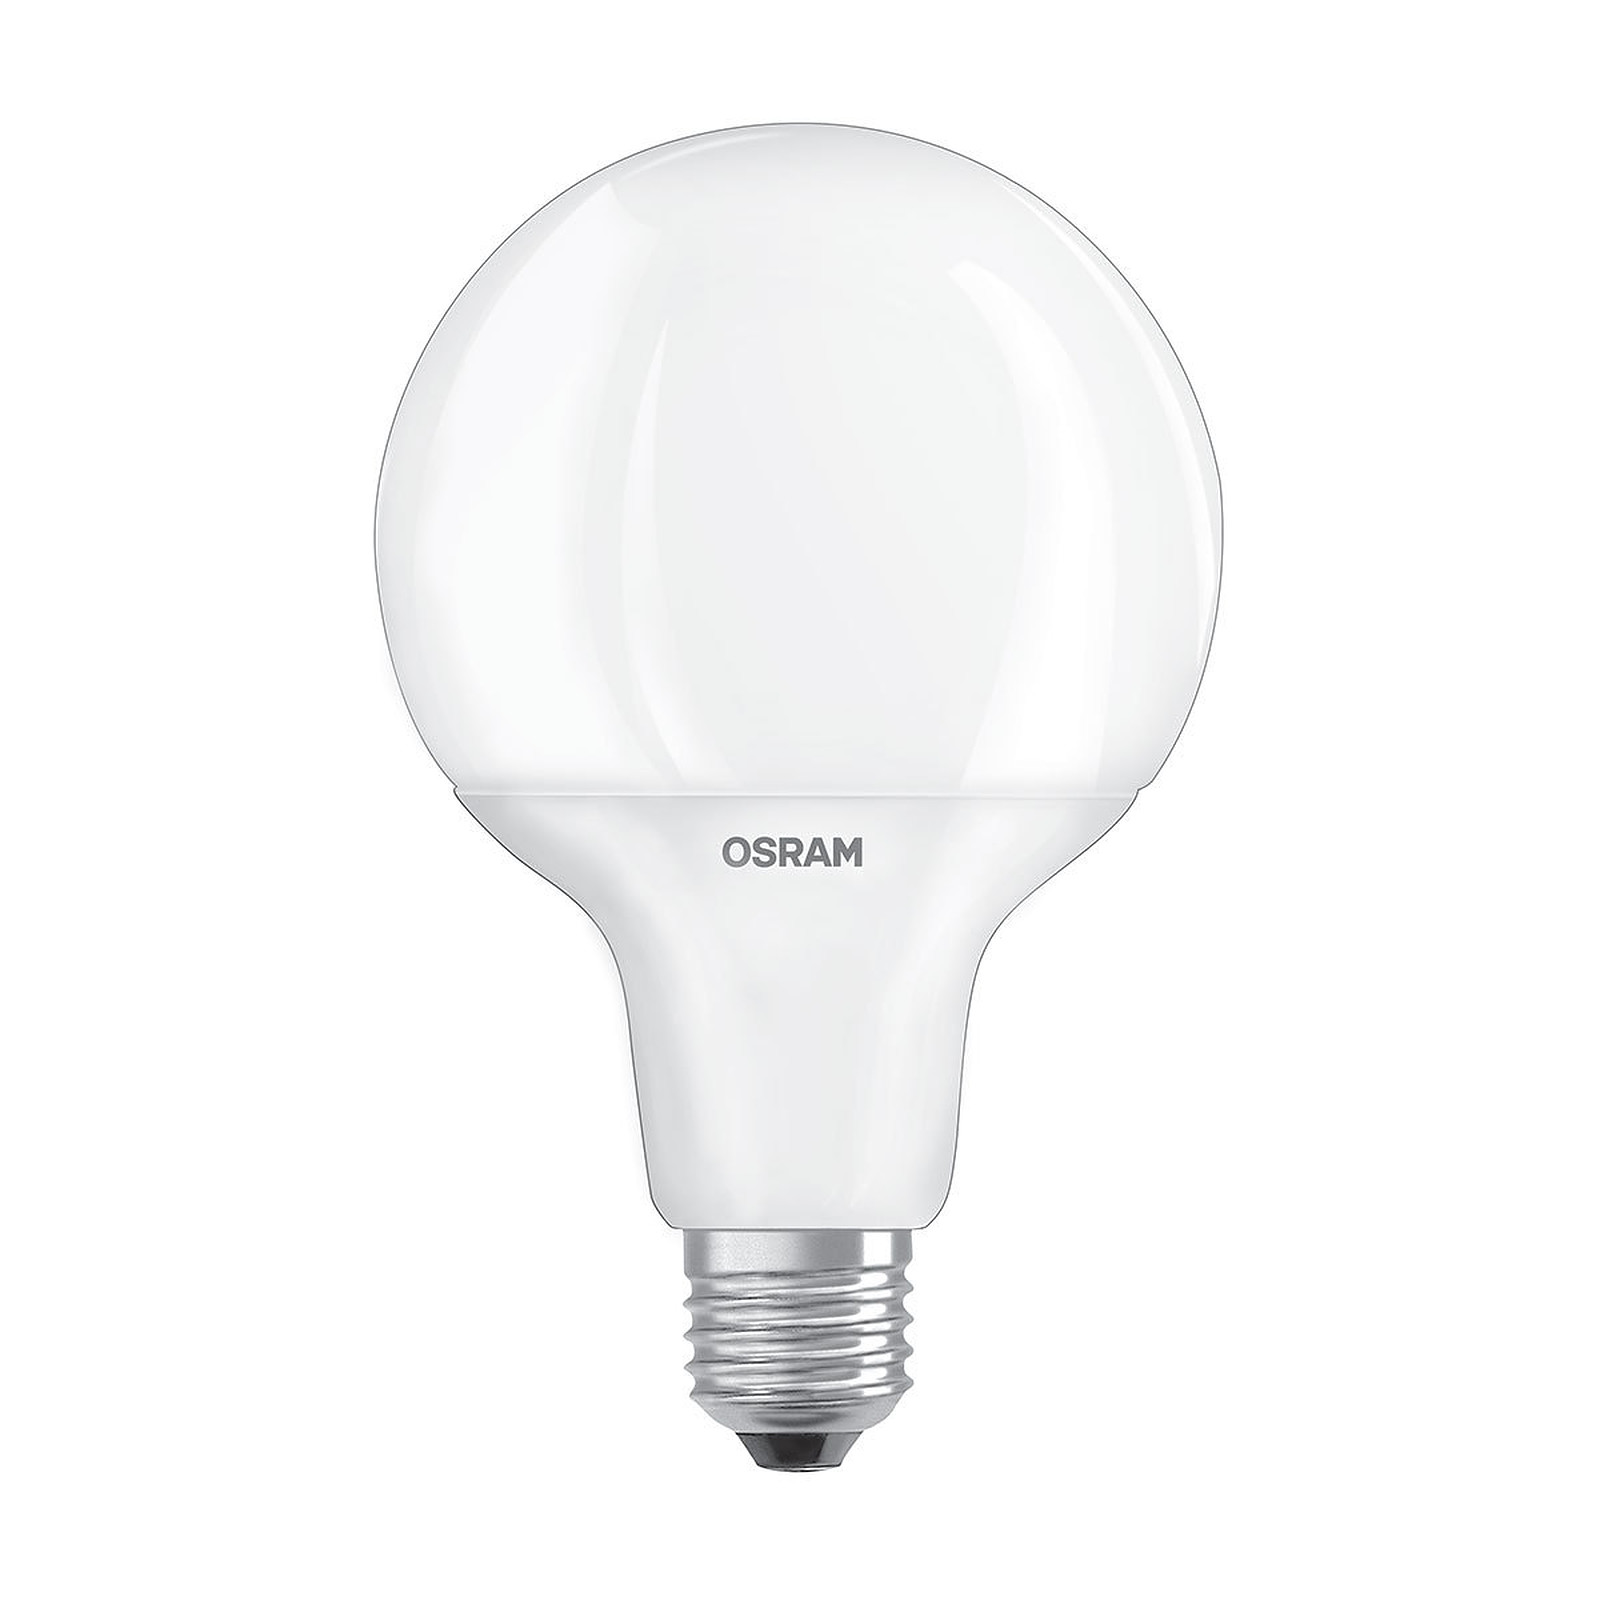 OSRAM Ampoule LED Superstar Classic globe E27 9W (60W) dimmable A+